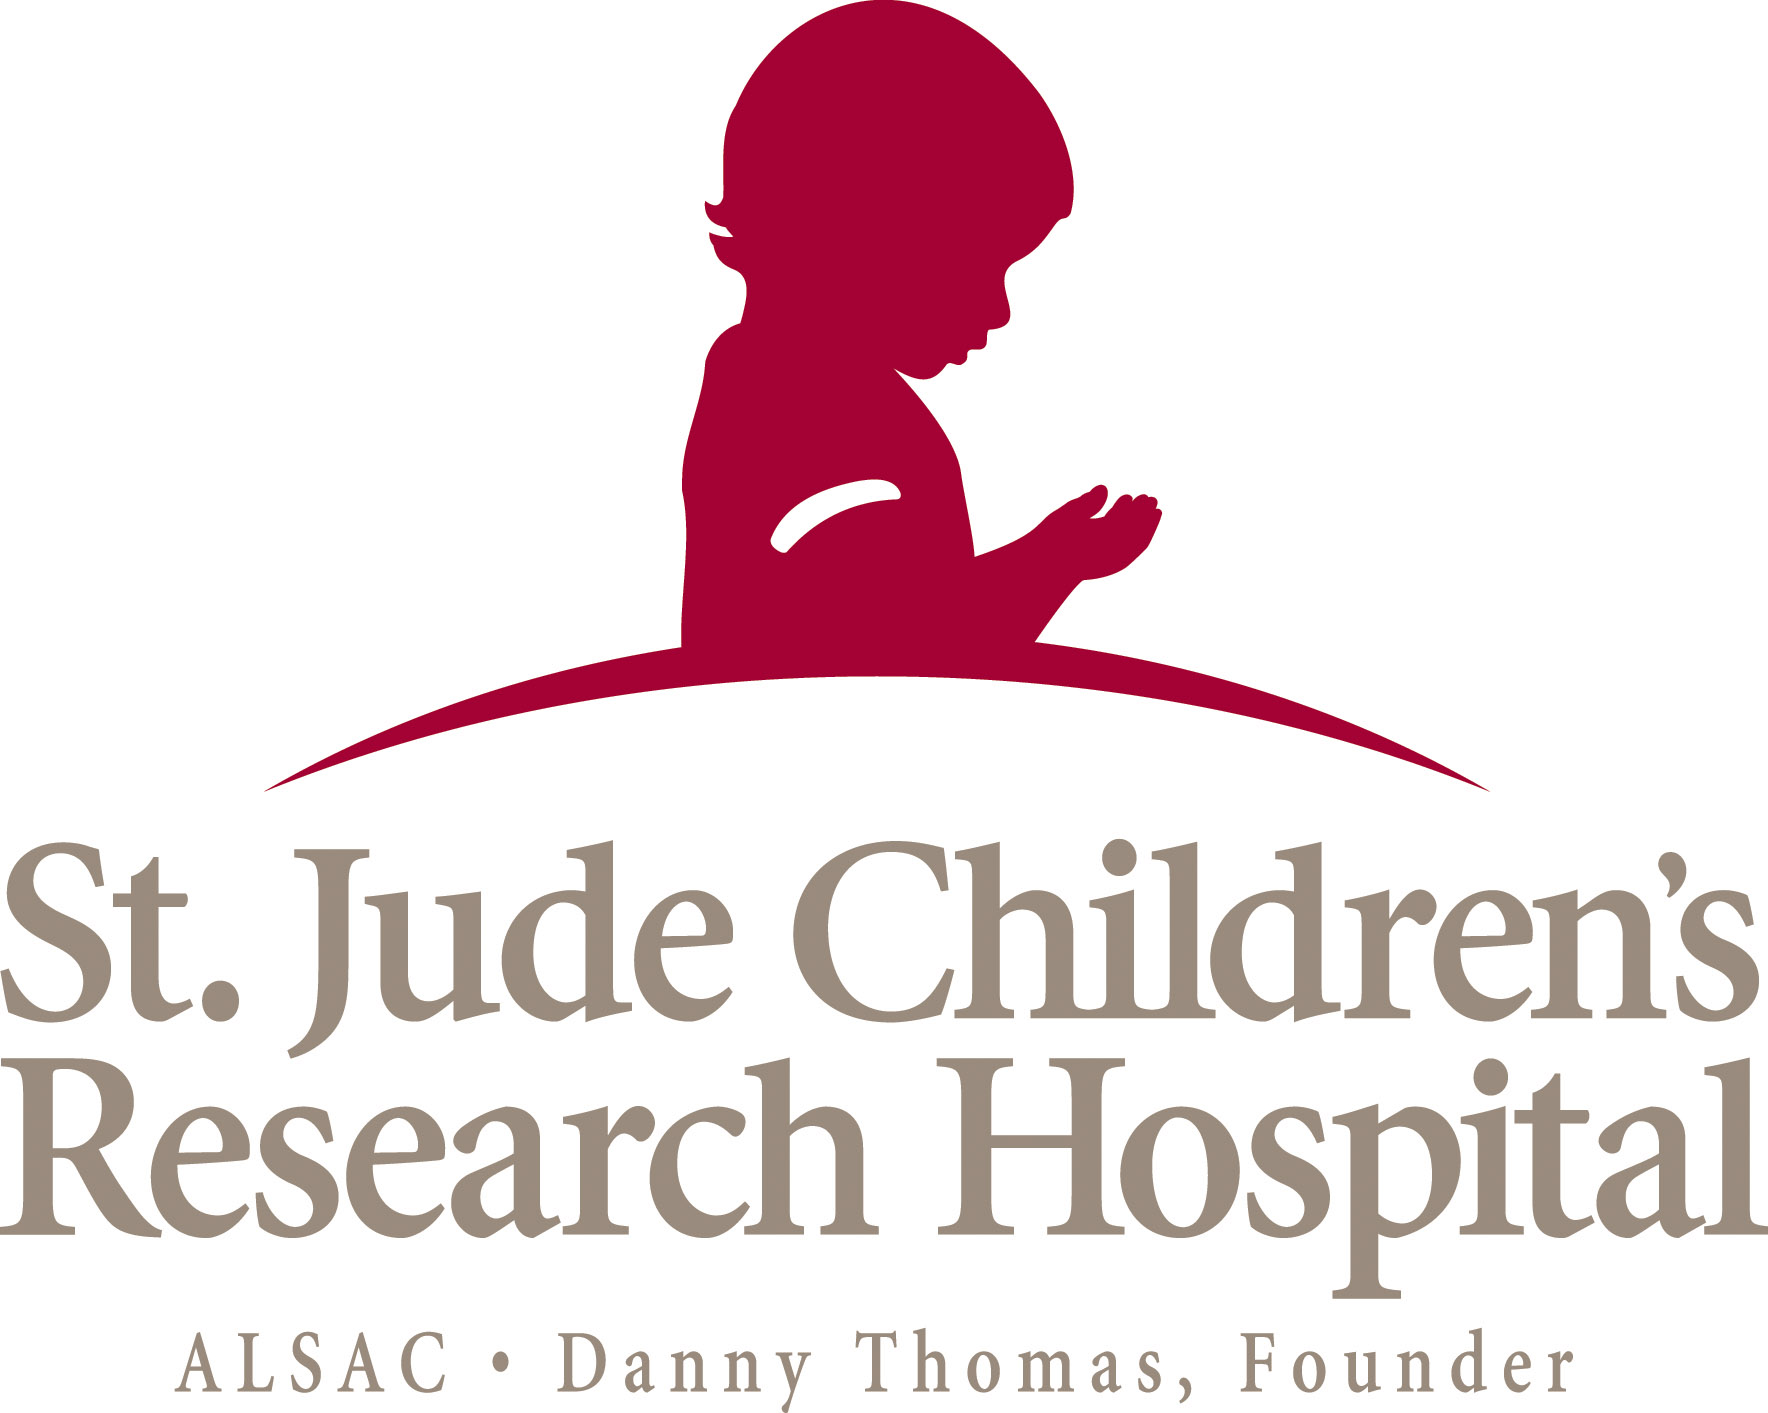 st.-jude-childrens-research-hospital.jpg